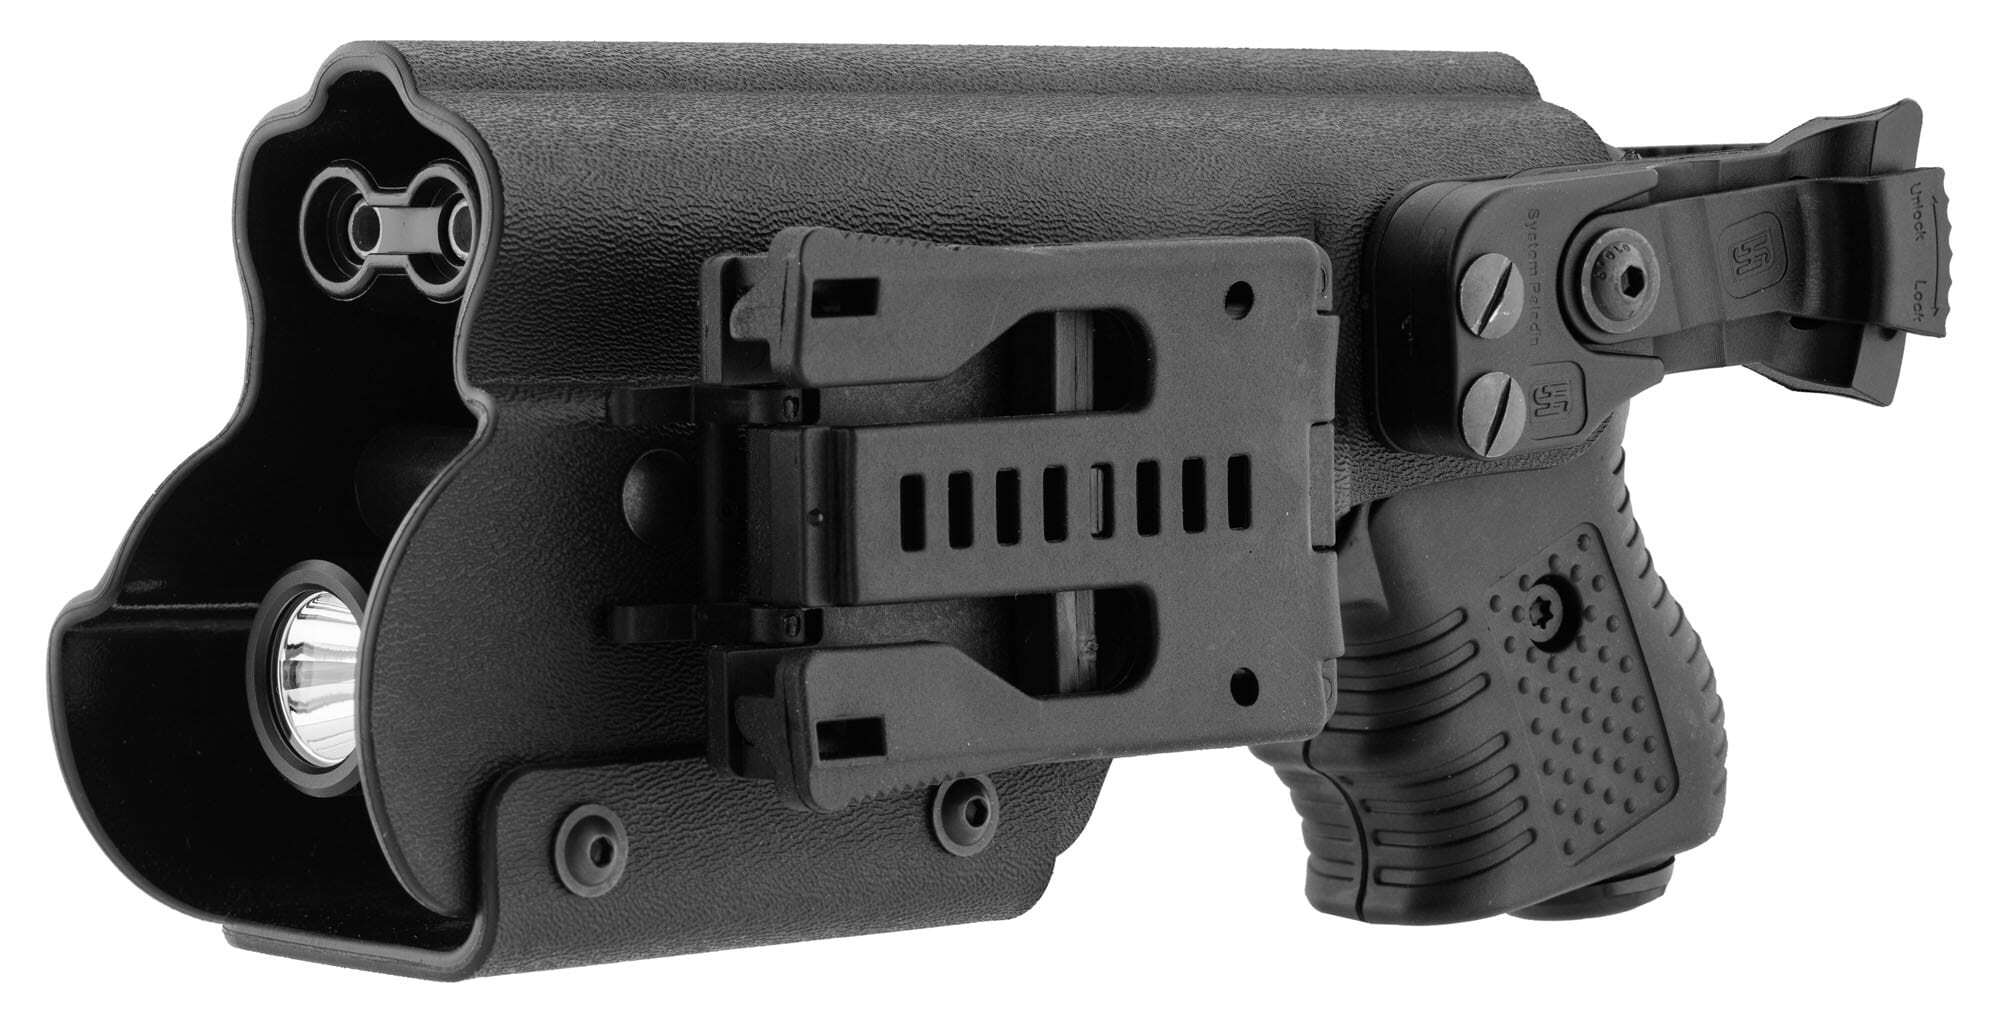 JPX390-6-Holster pour JPX - Kydex Paladin II avec lampe tactique - JPX400